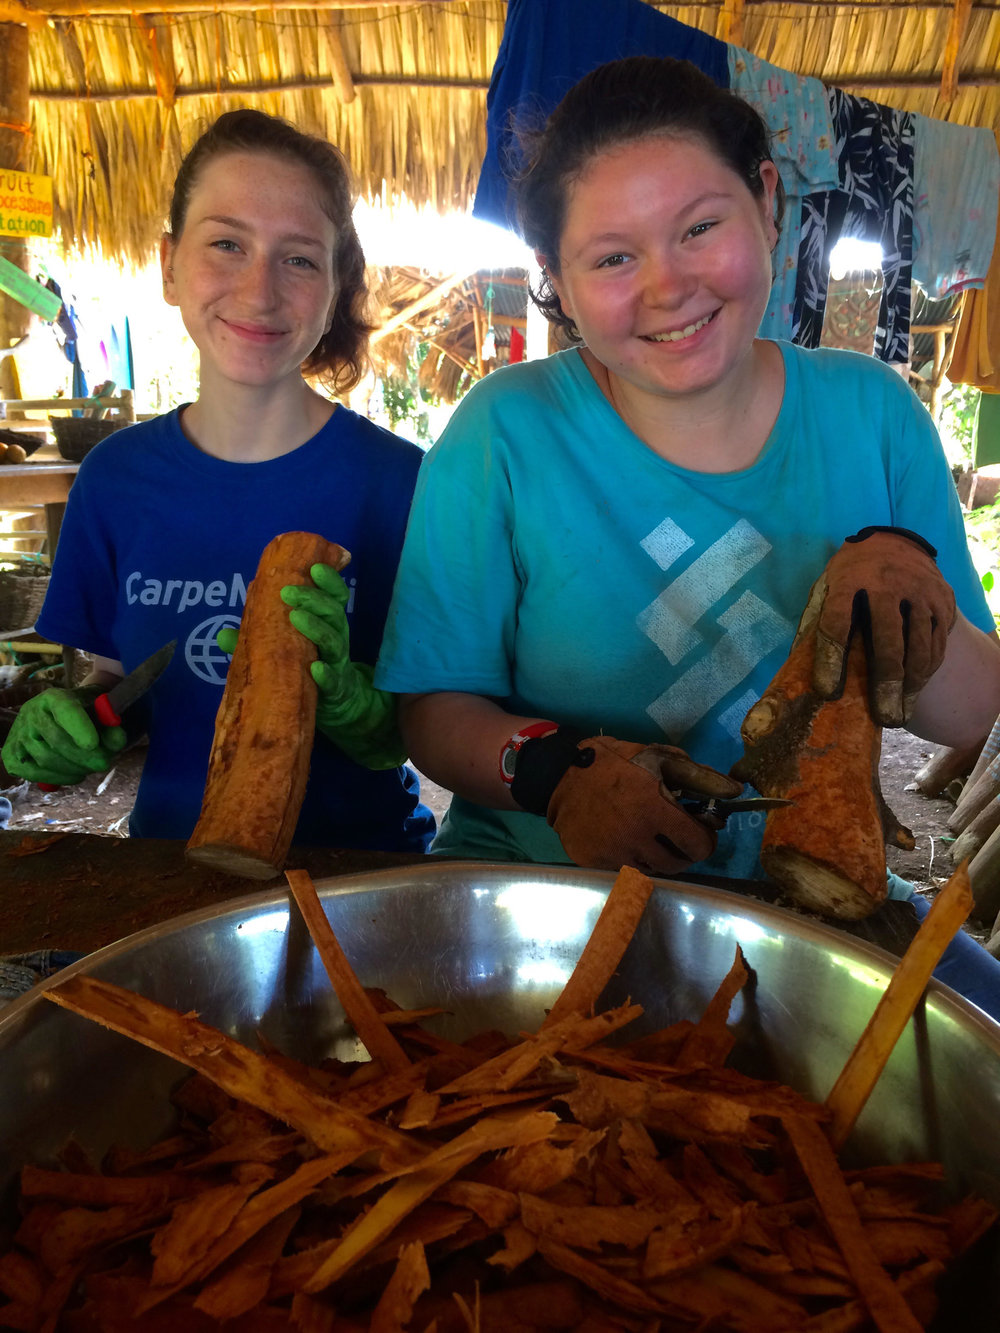 First time: harvesting and processing cinnamon from a cinnamon tree. Natali and Kiara worked diligently to carefully remove strips of the inner bark of the tree.